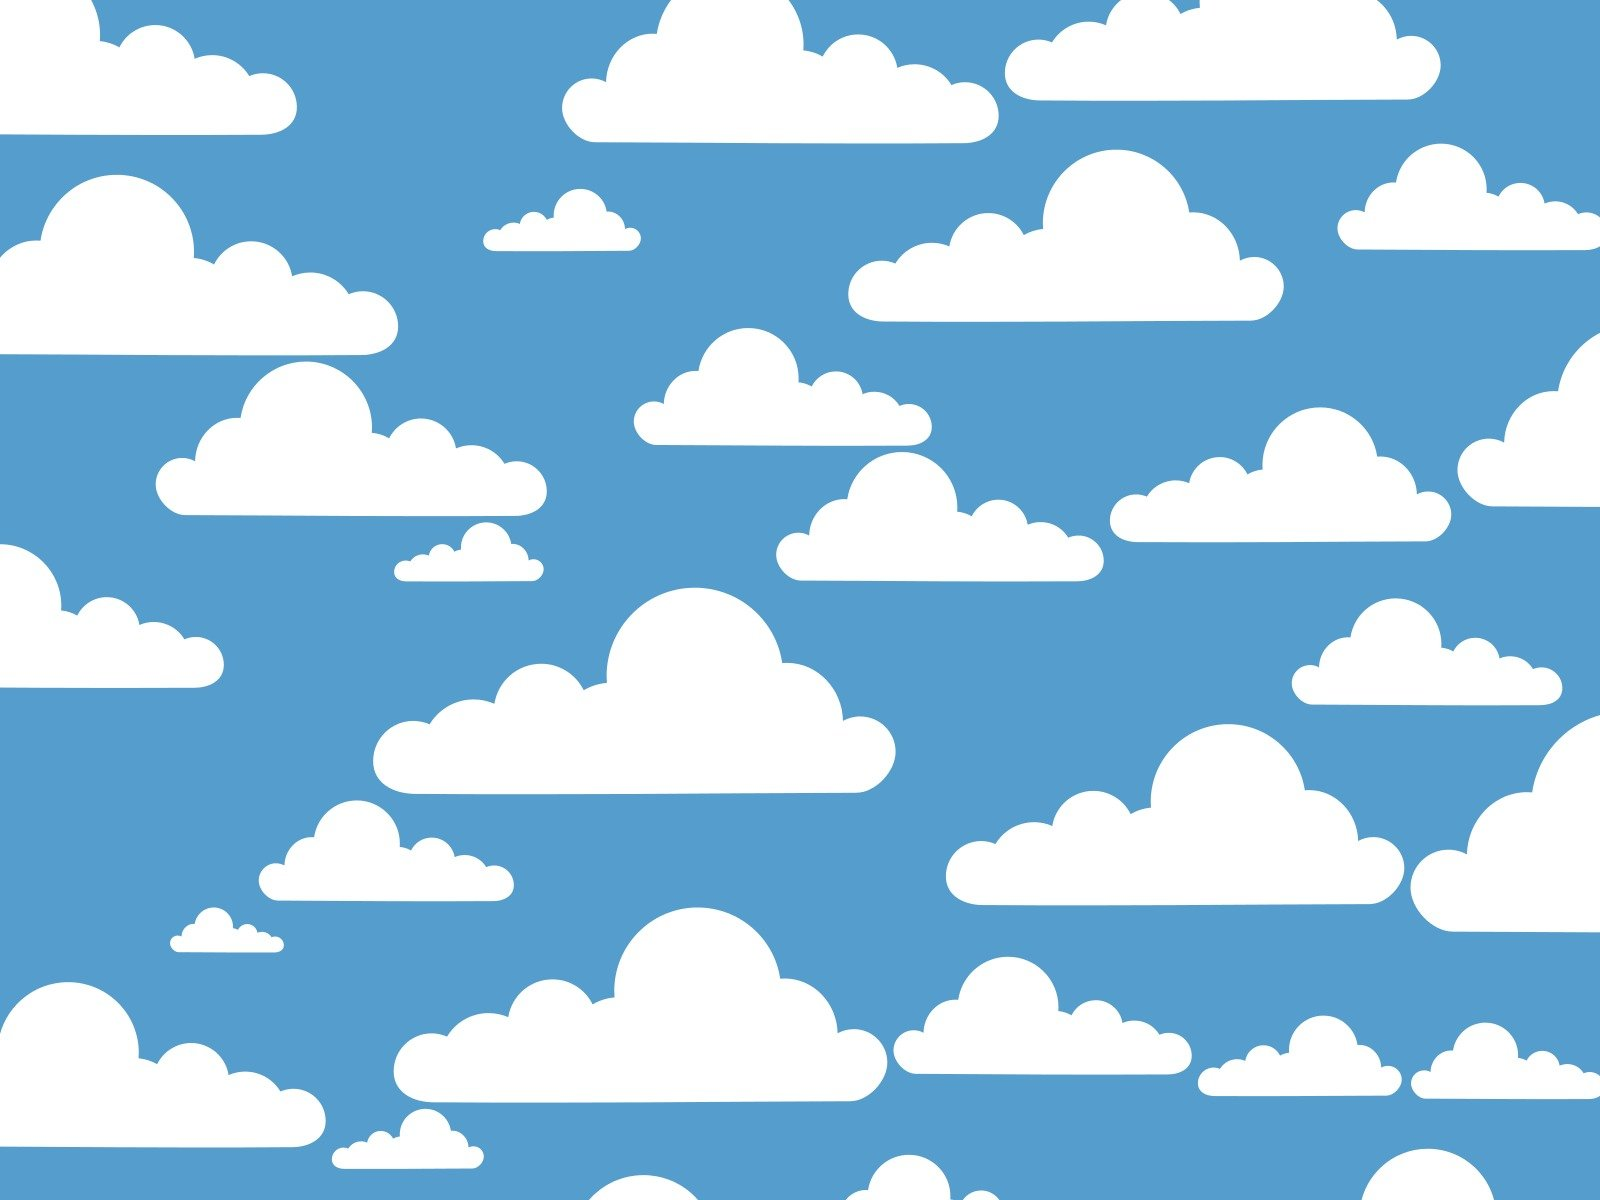 wallpaper with simple white clouds